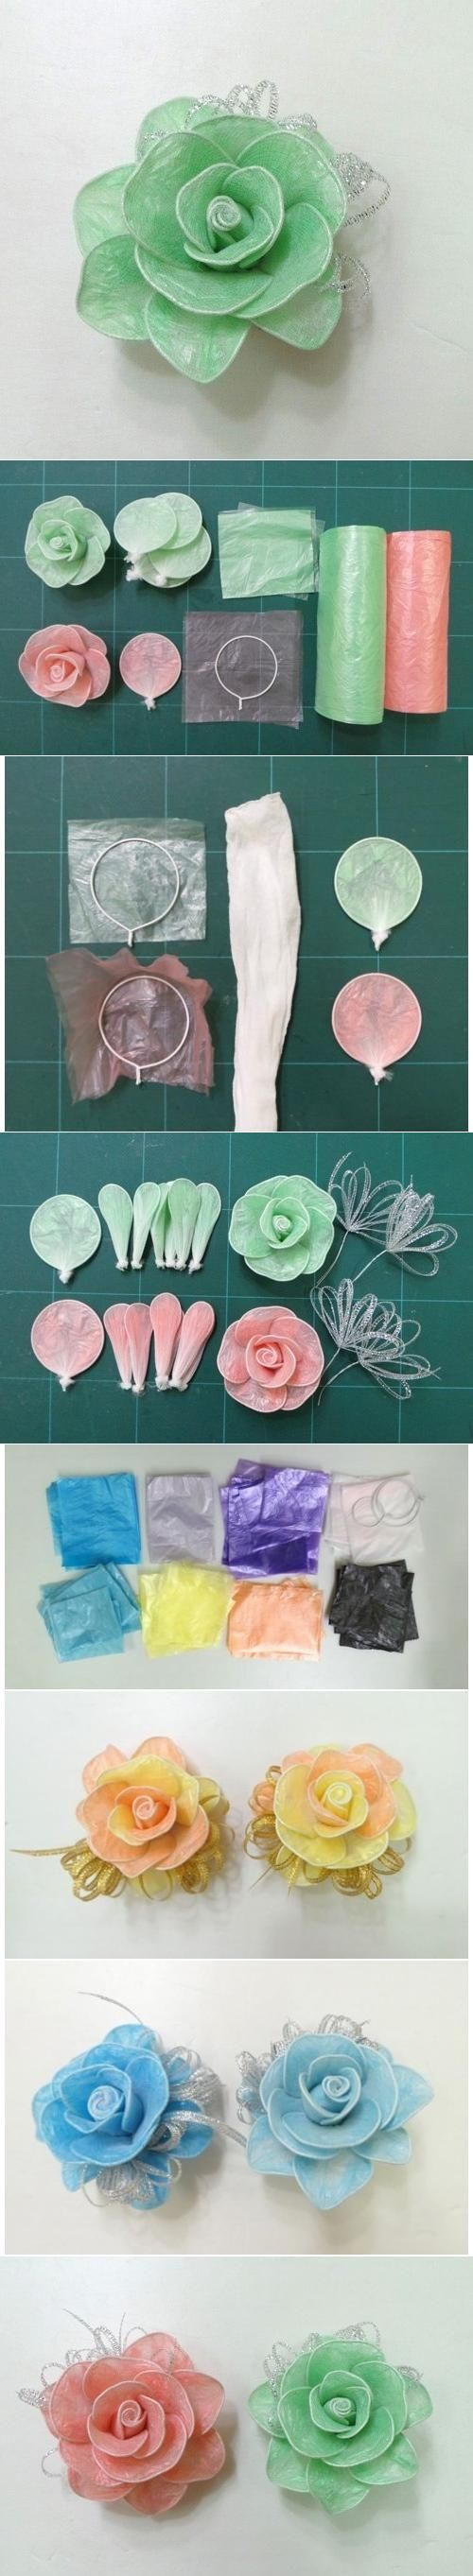 DIY Plastic Bag Roses via usefuldiy.com